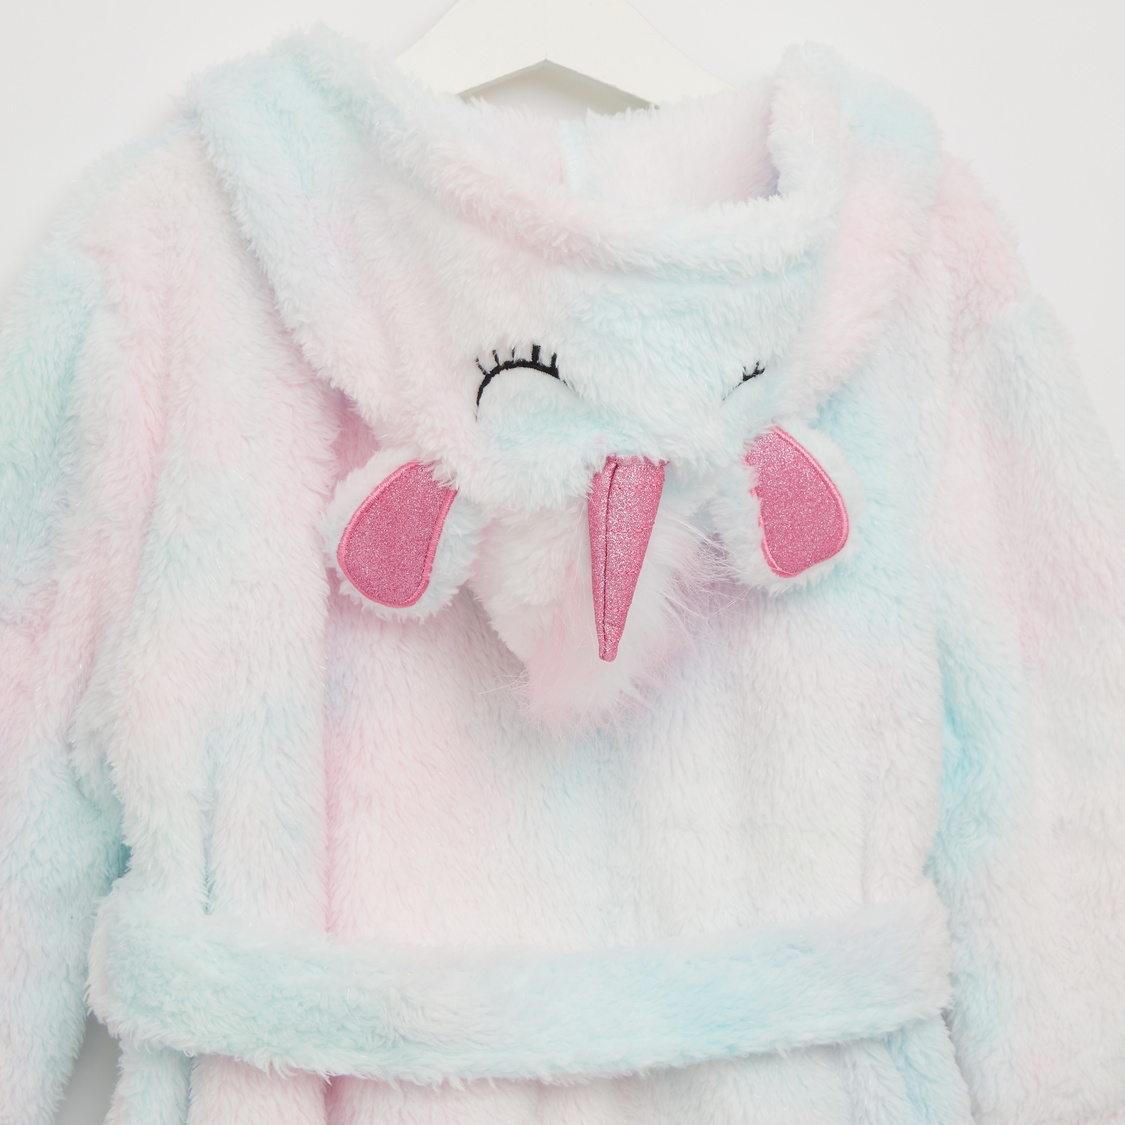 Cozy Collection Textured Hooded Neck Unicorn Robe with Tie-Ups